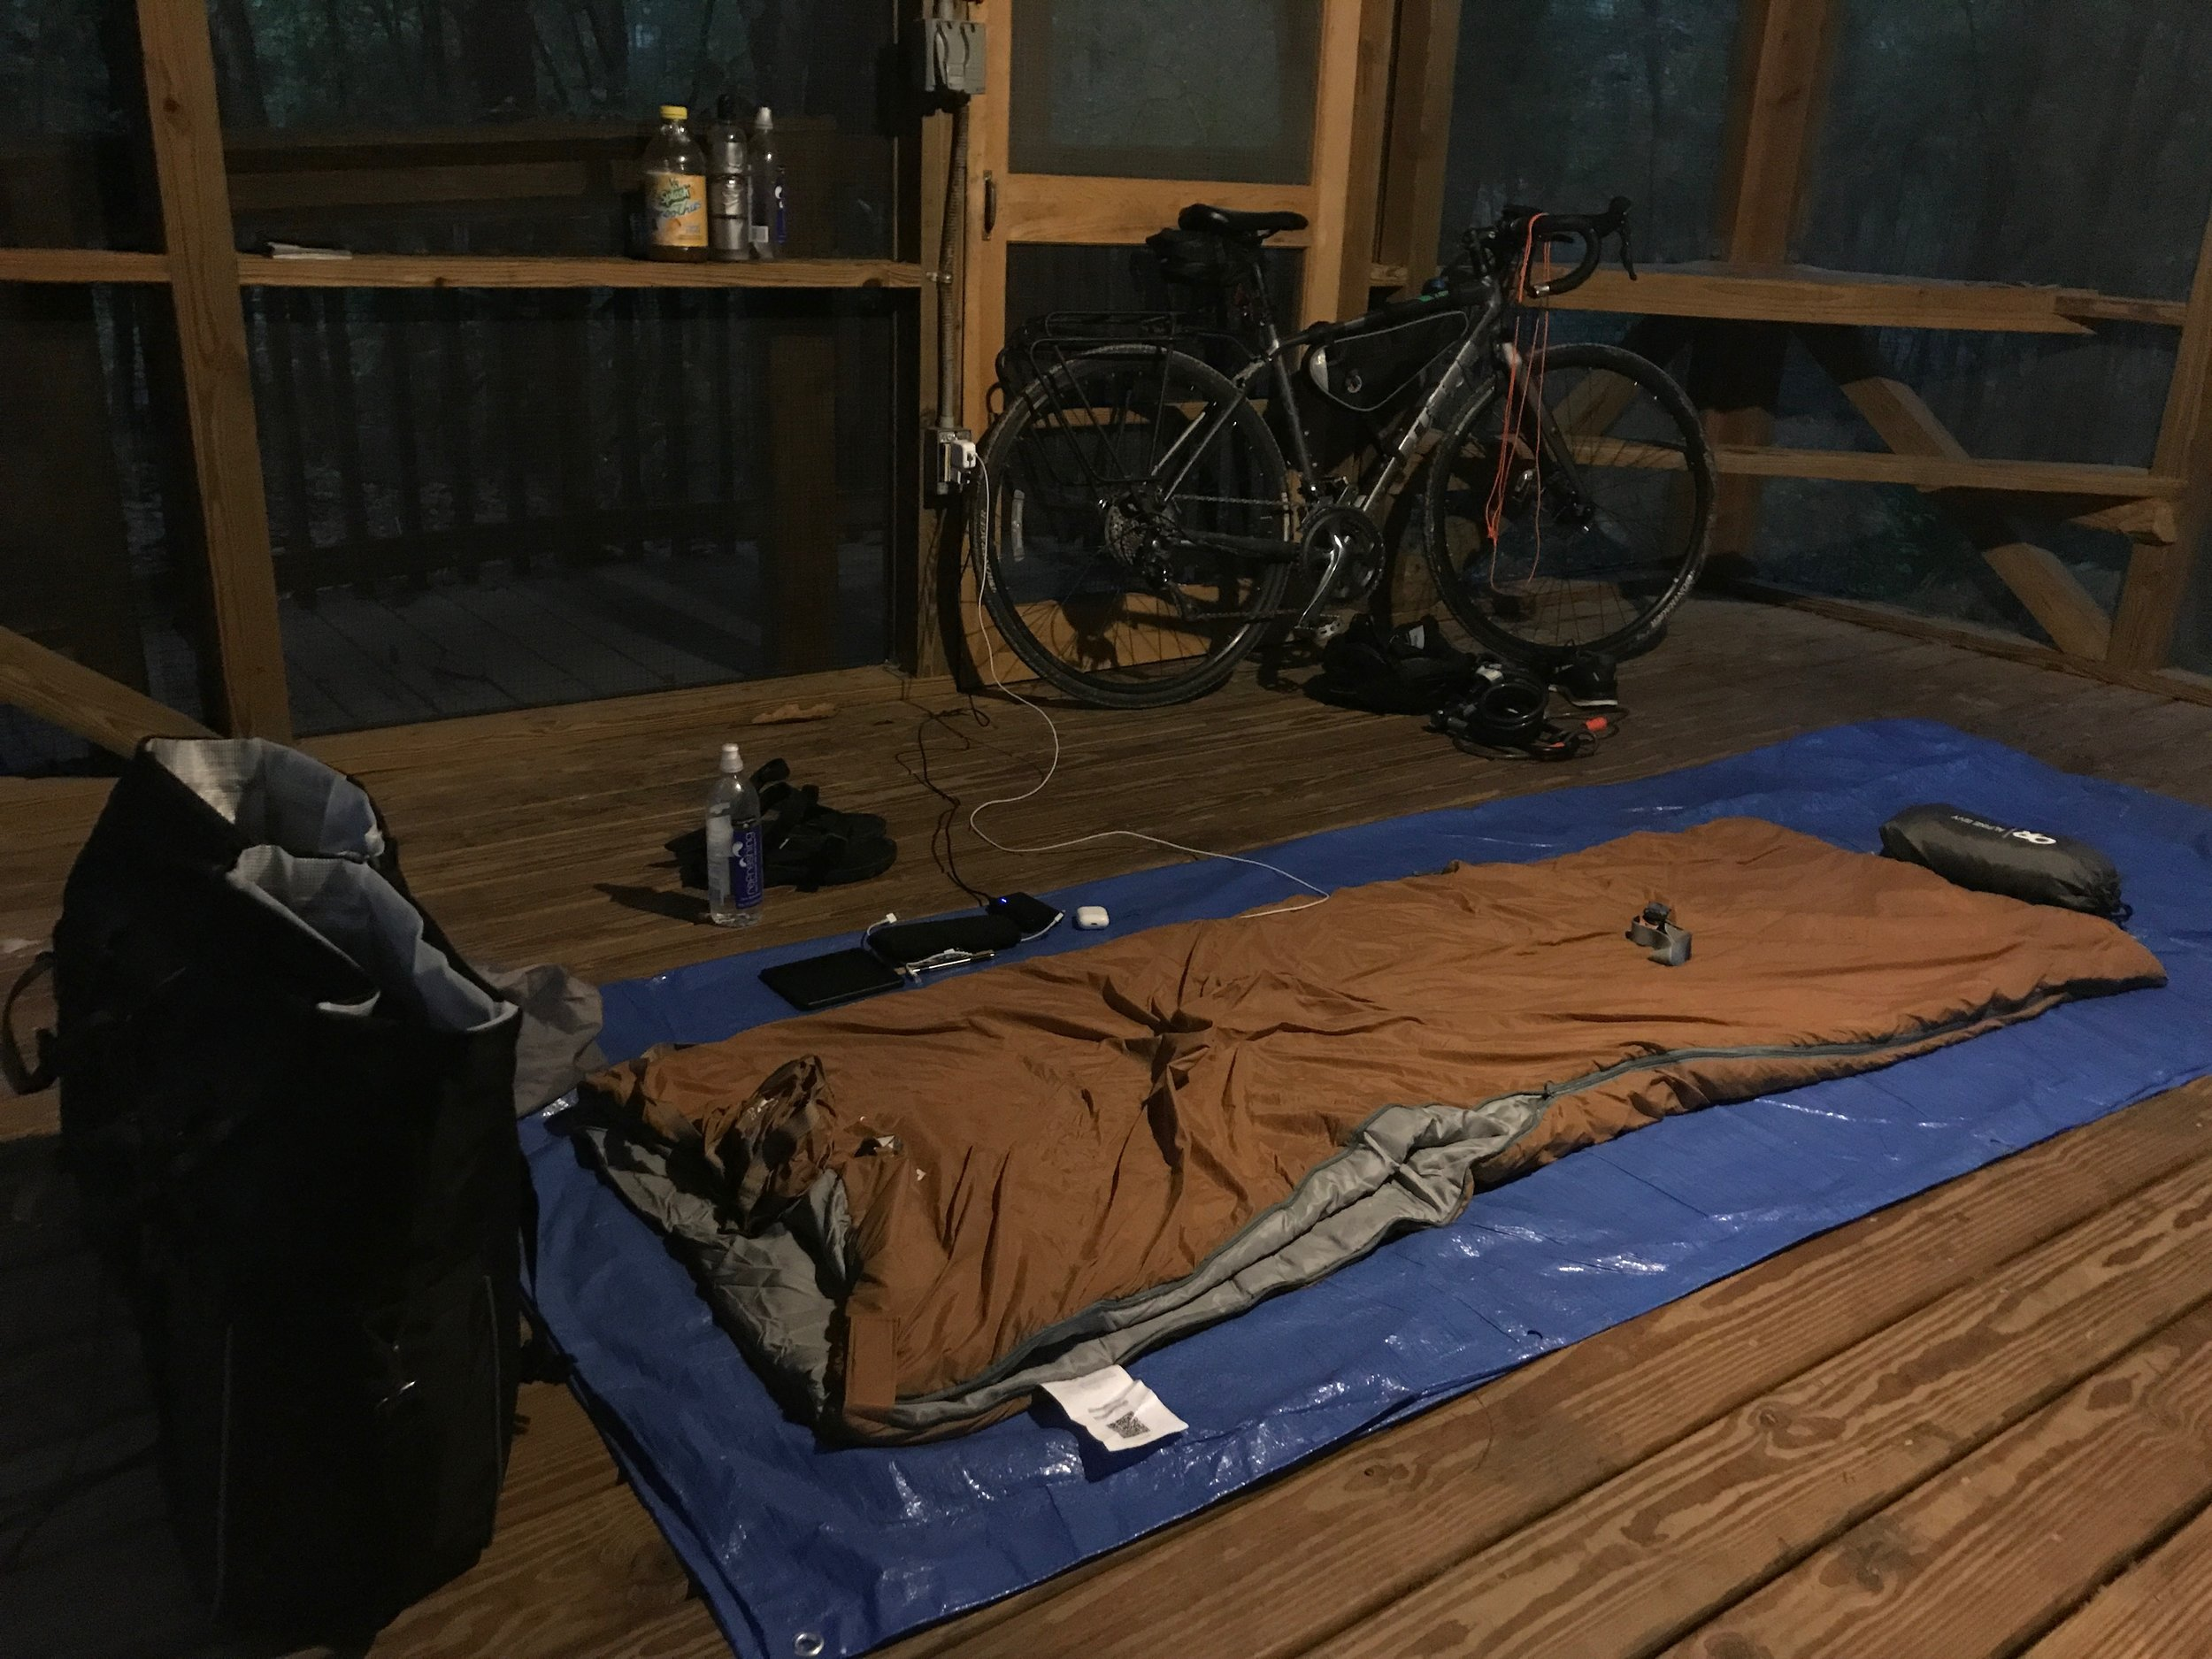 Sleeping bag in the Holton Creek River Camp platform - the wood floors were even well-sealed, but I set up the tarp as a barrier anyway.